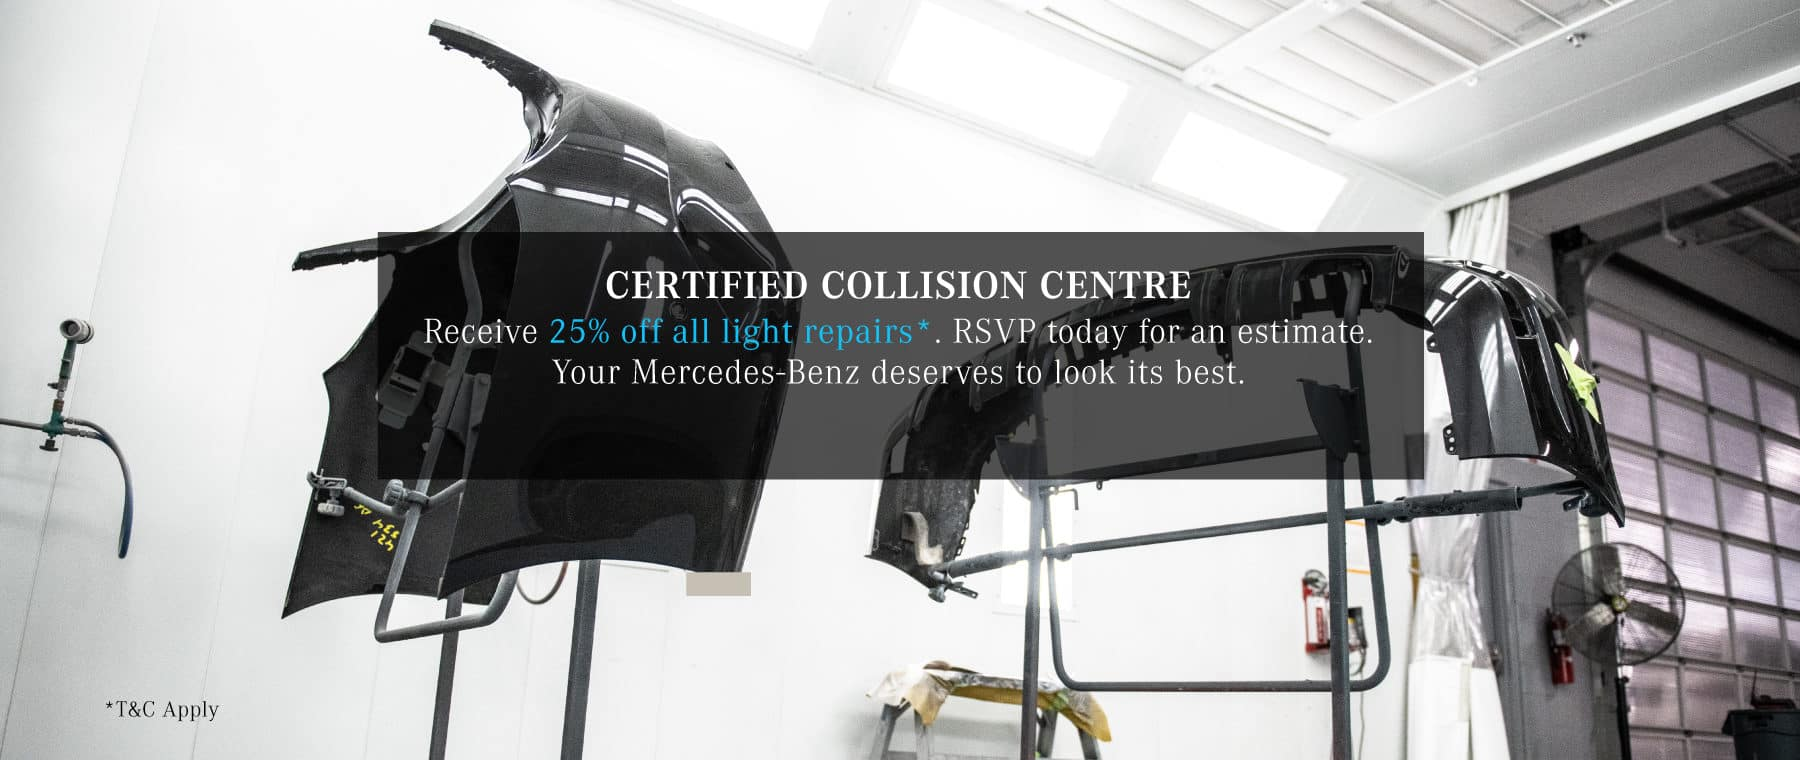 Website-2021_Collision-Centre-Homepage-July